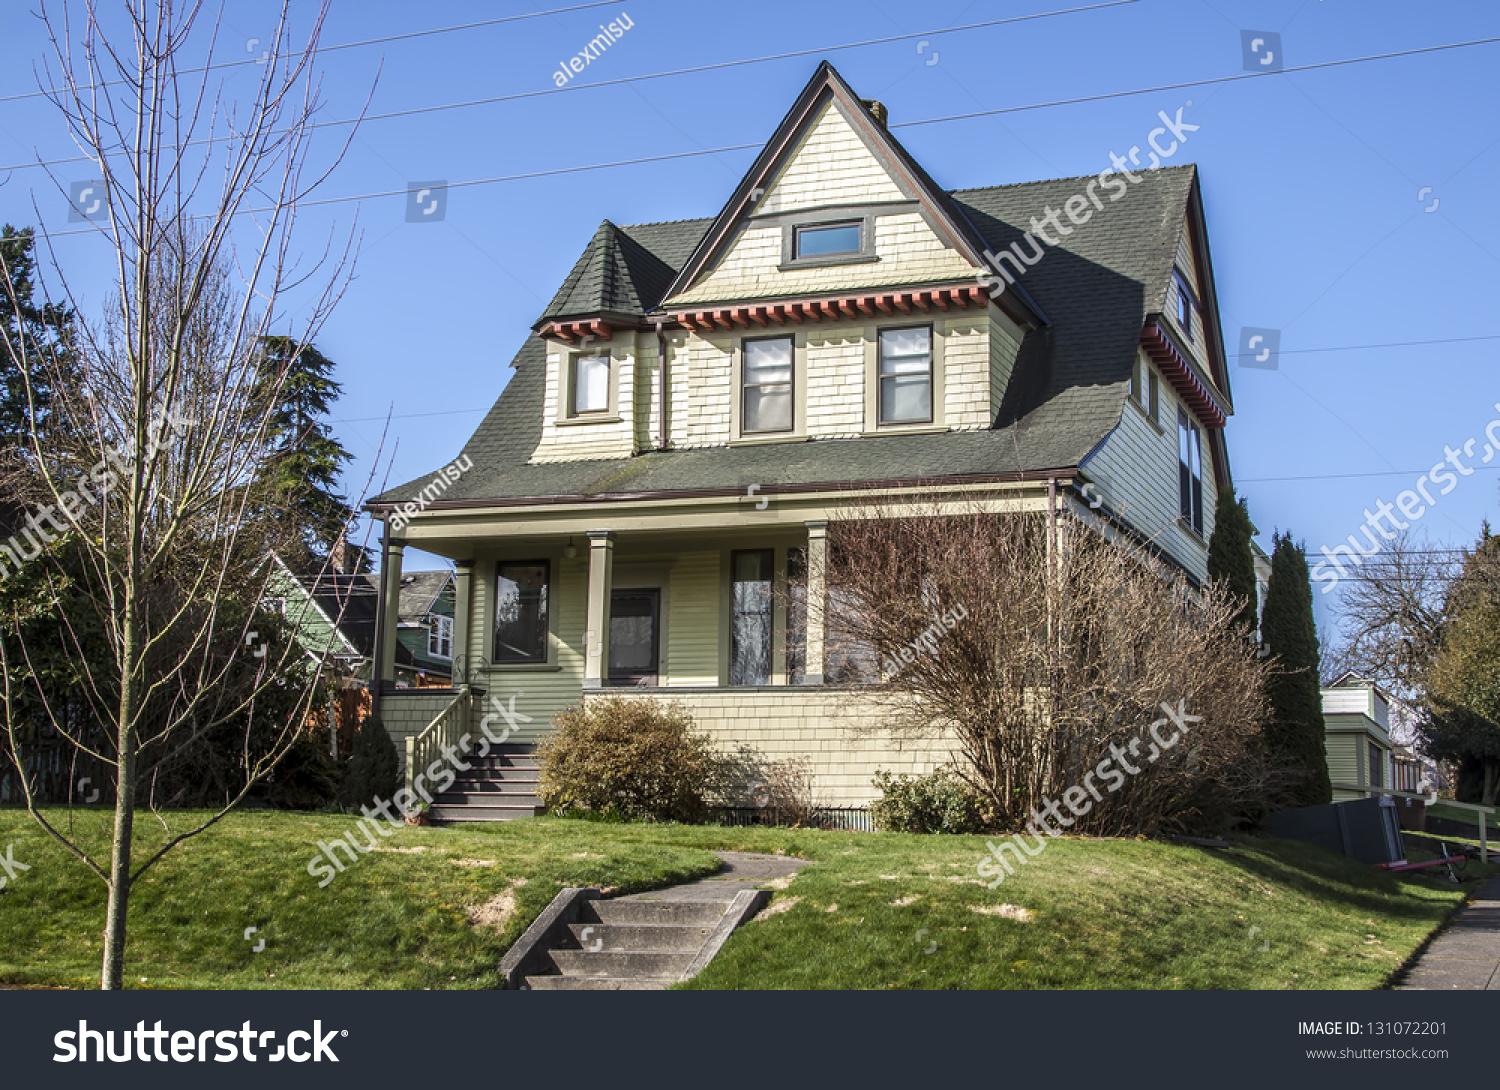 Old american luxury suburbs home with blue sky stock photo for Old american houses